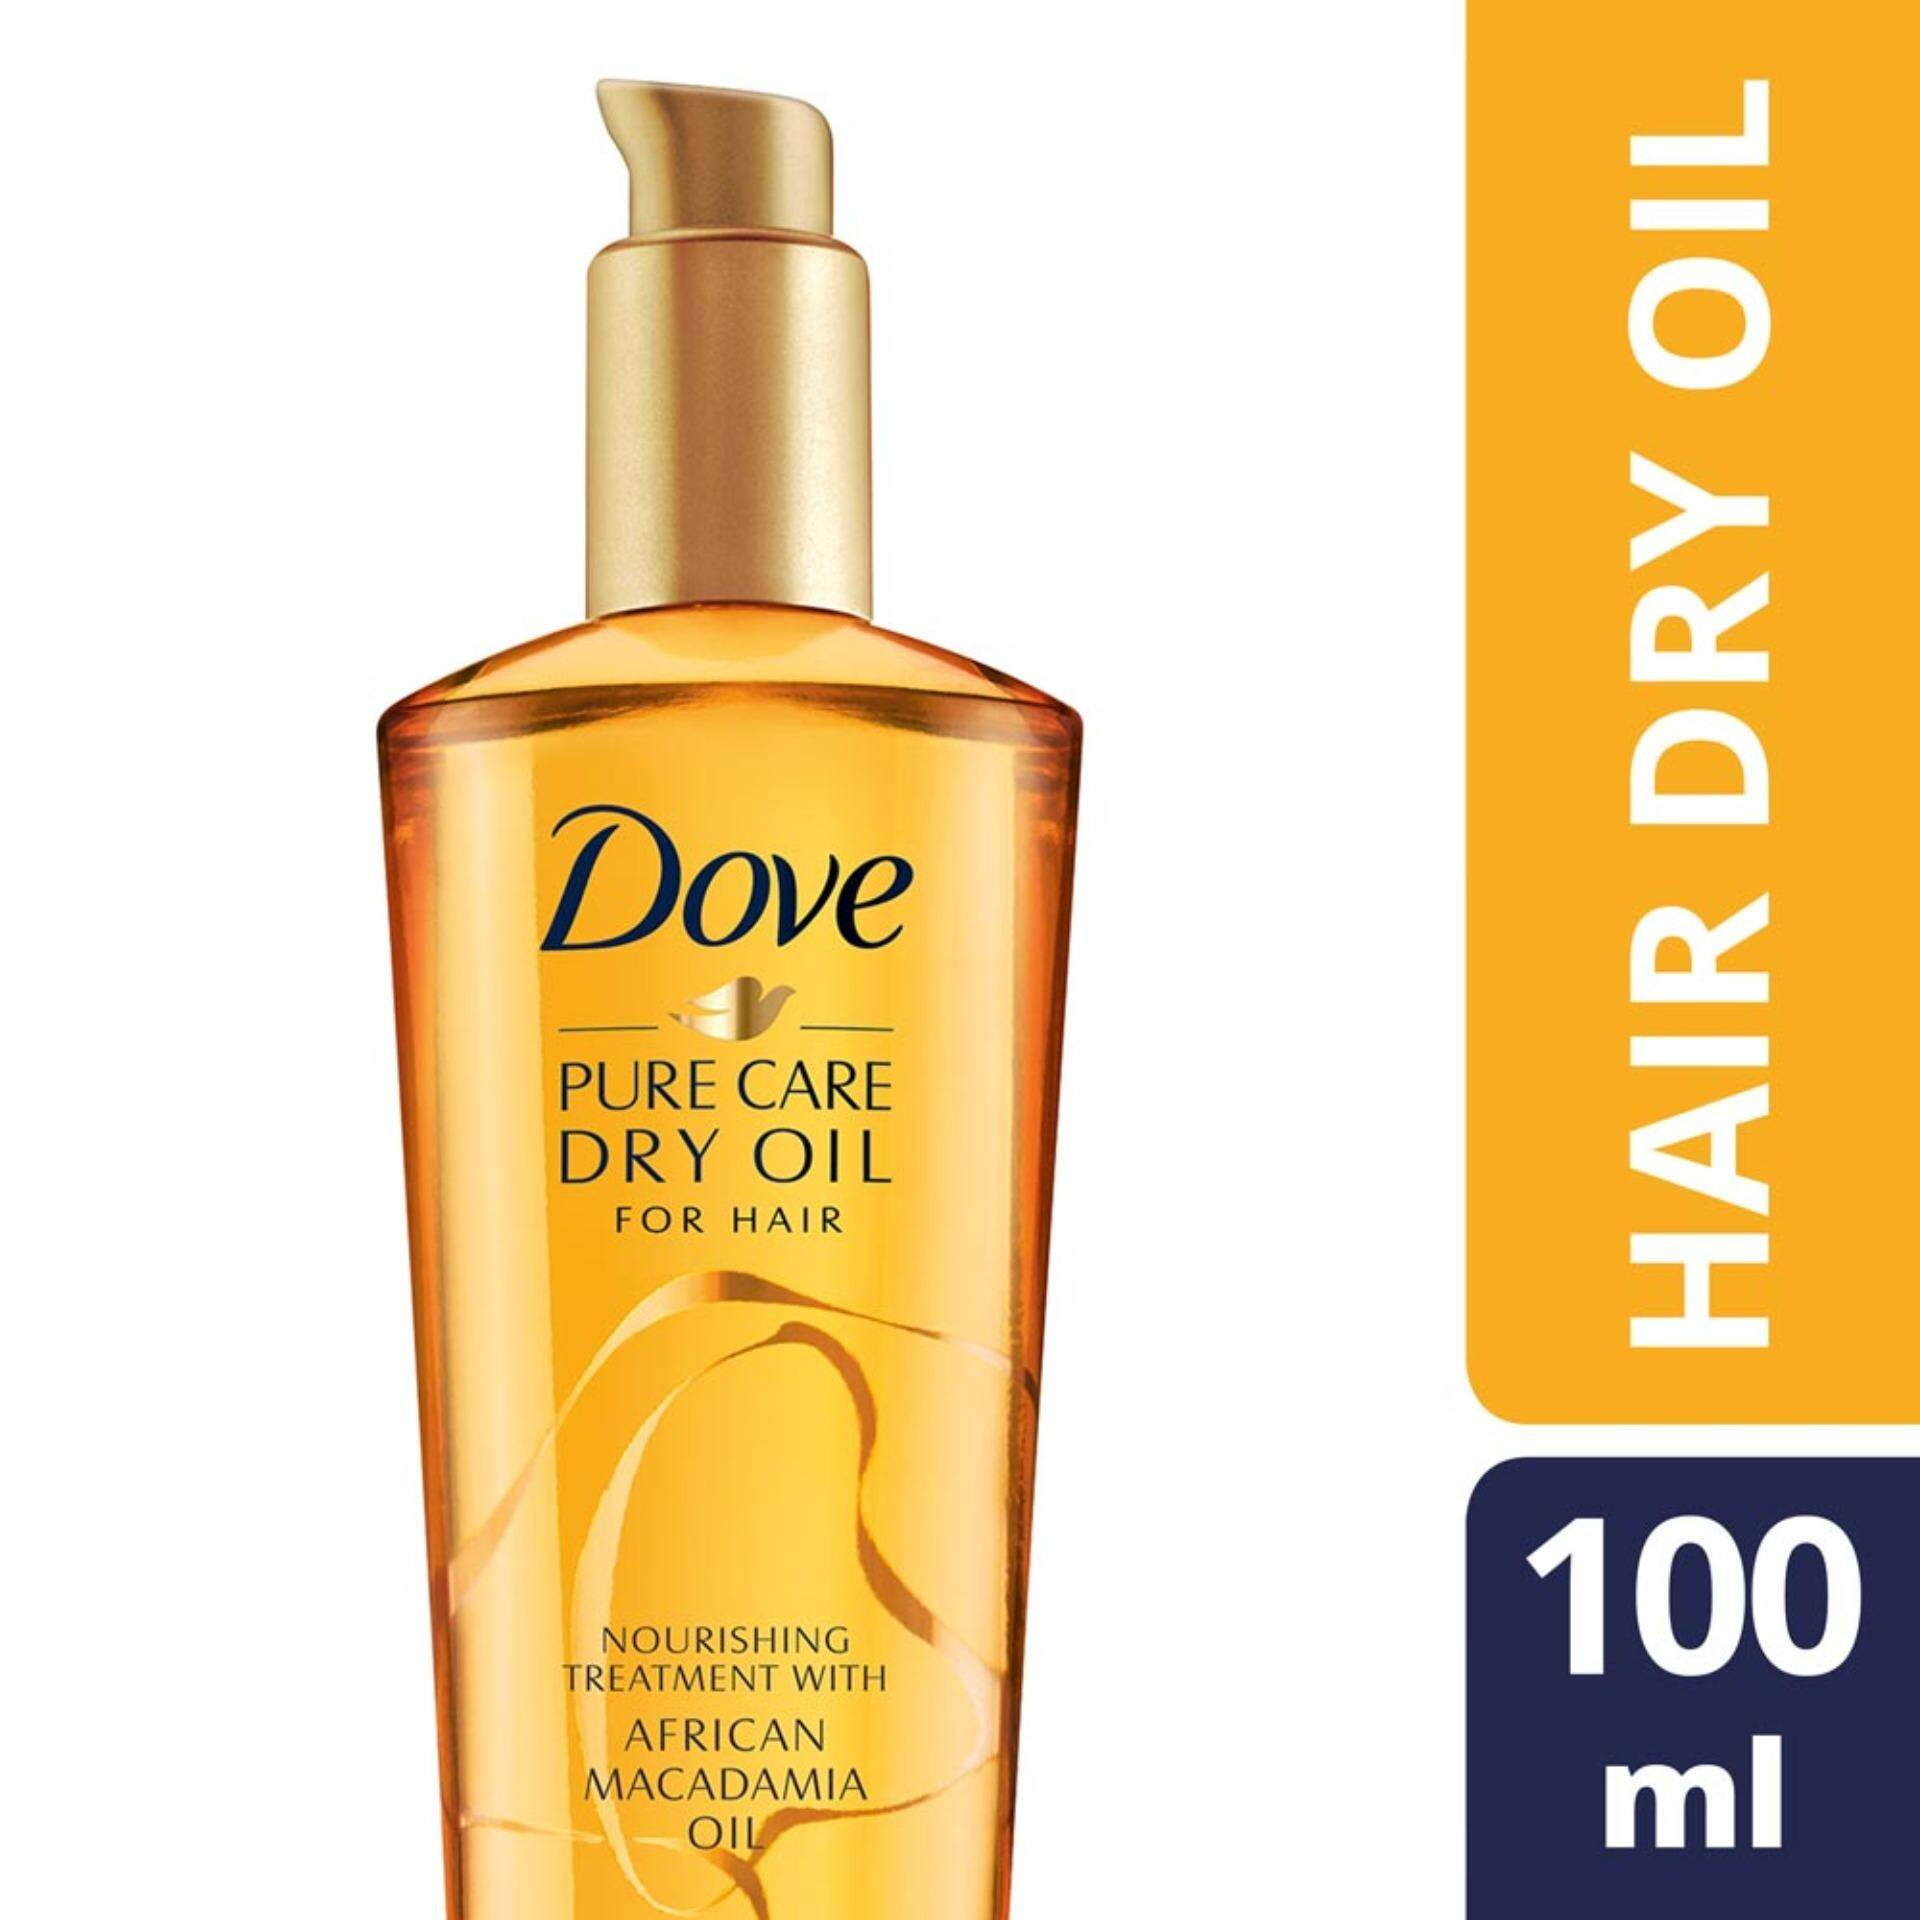 Dove Health Beauty Hair Care Price In Malaysia Best Shampoo Total Damage Treatment 320 Ml Advance Series Pure Dry Oil Leave On 100ml